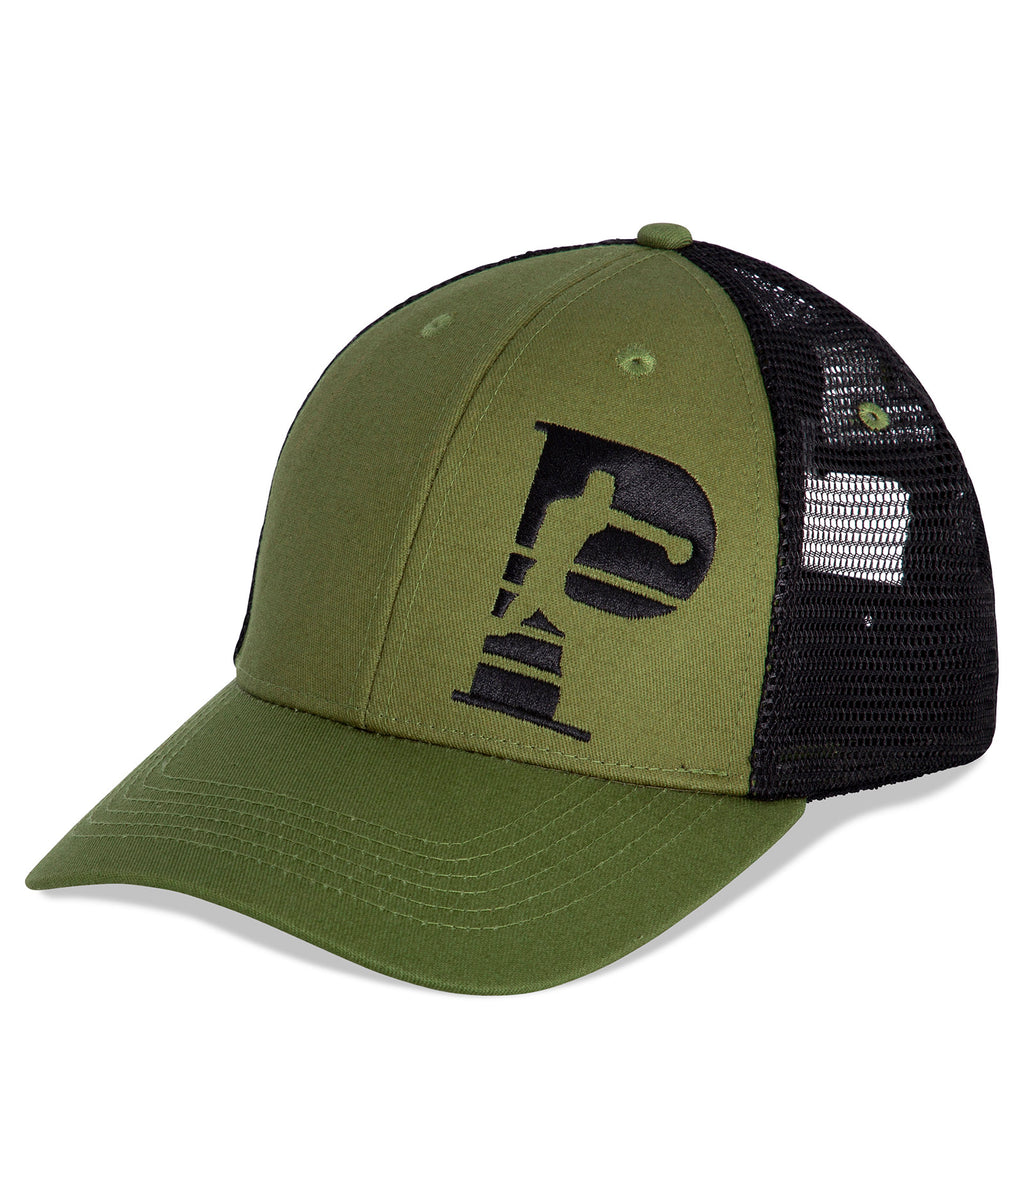 6-panel Olive green brim cap - Prize Fighter Australia